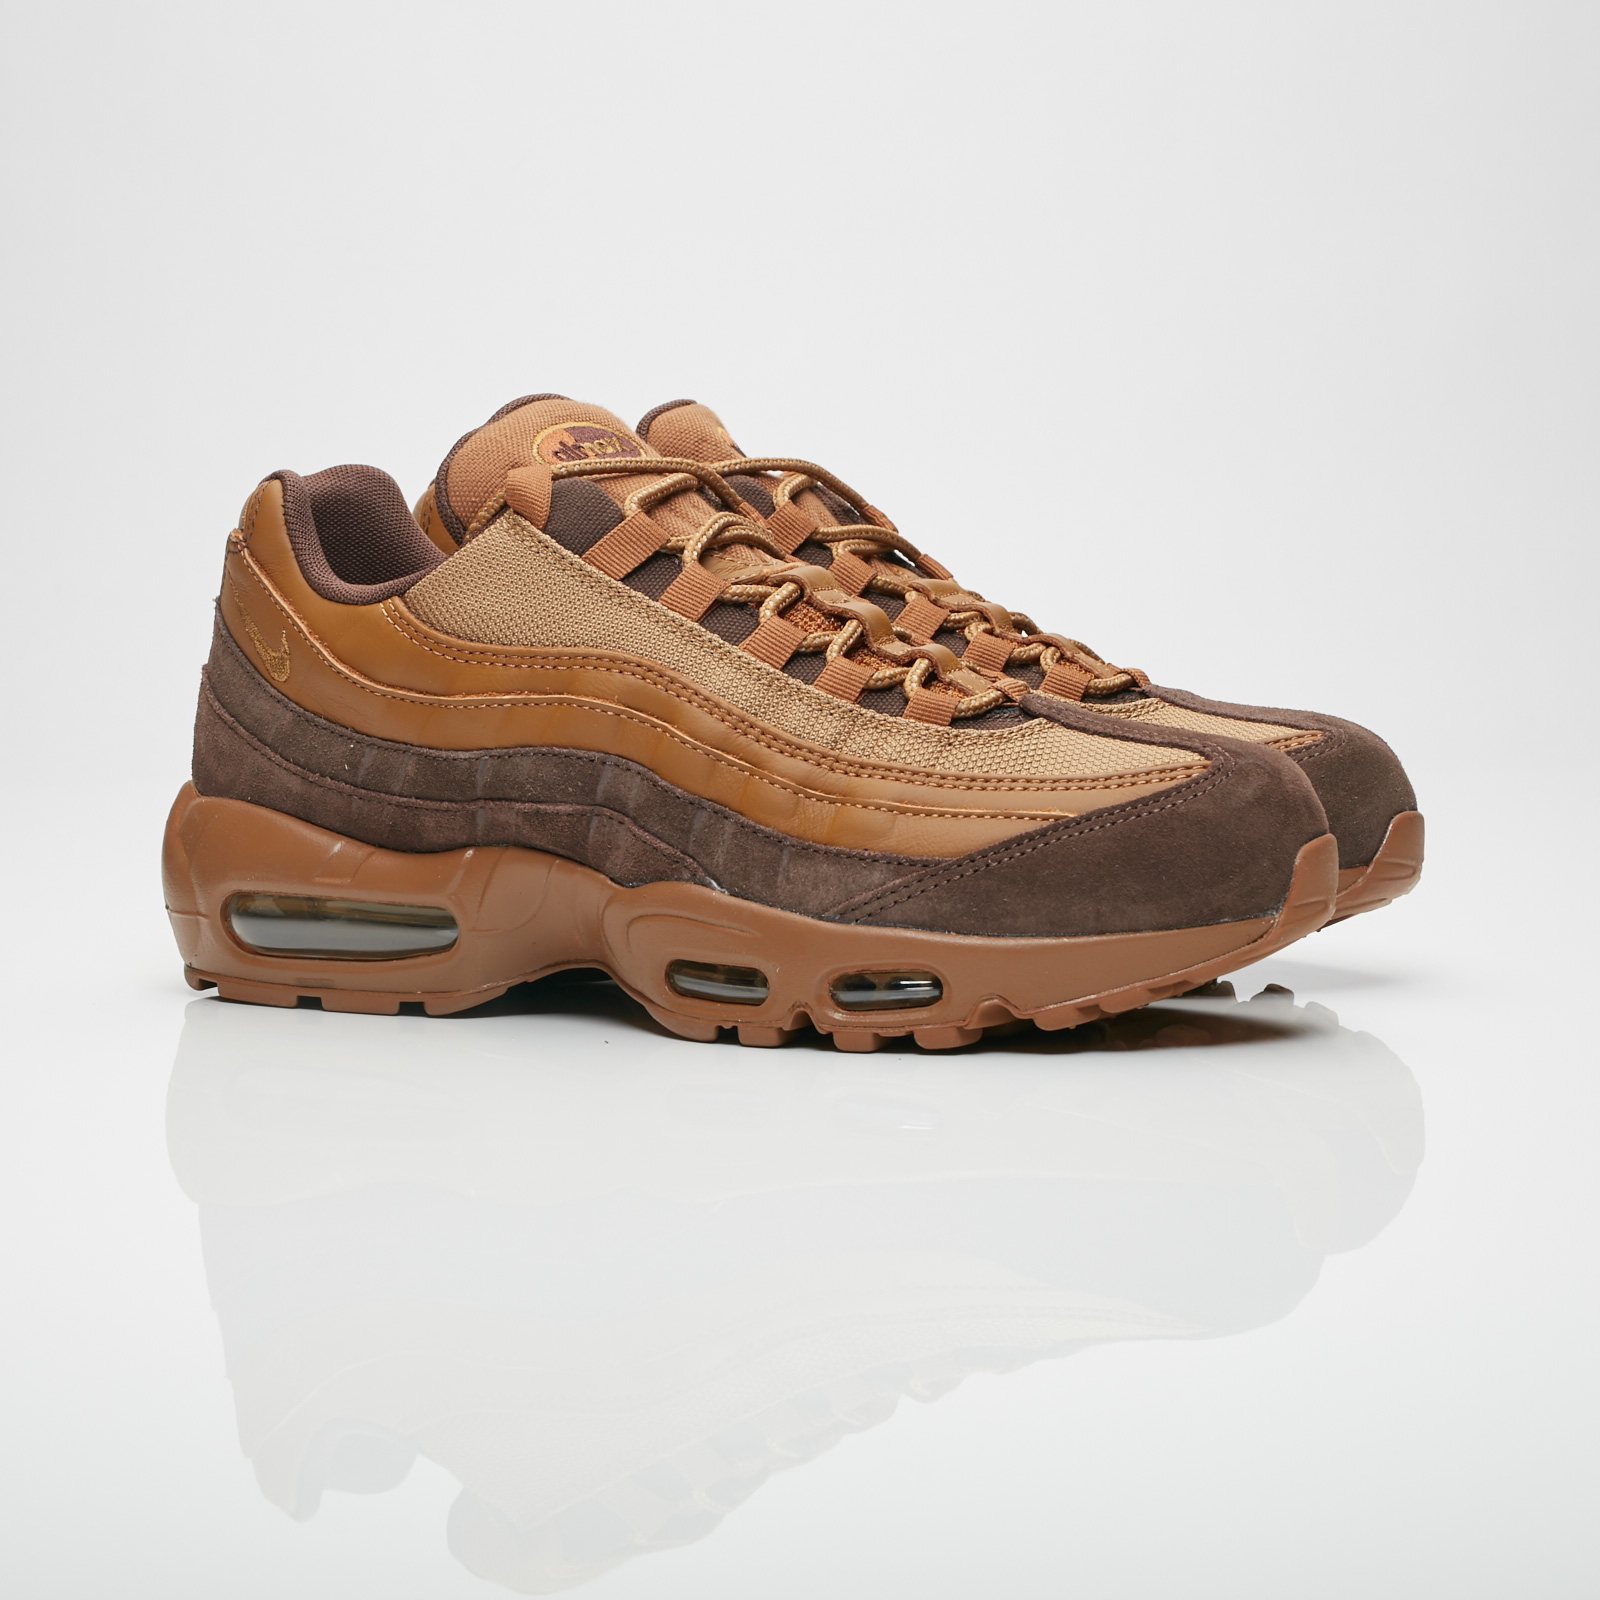 various colors 643b7 c3fa1 Nike Sportswear Air Max 95 Premium